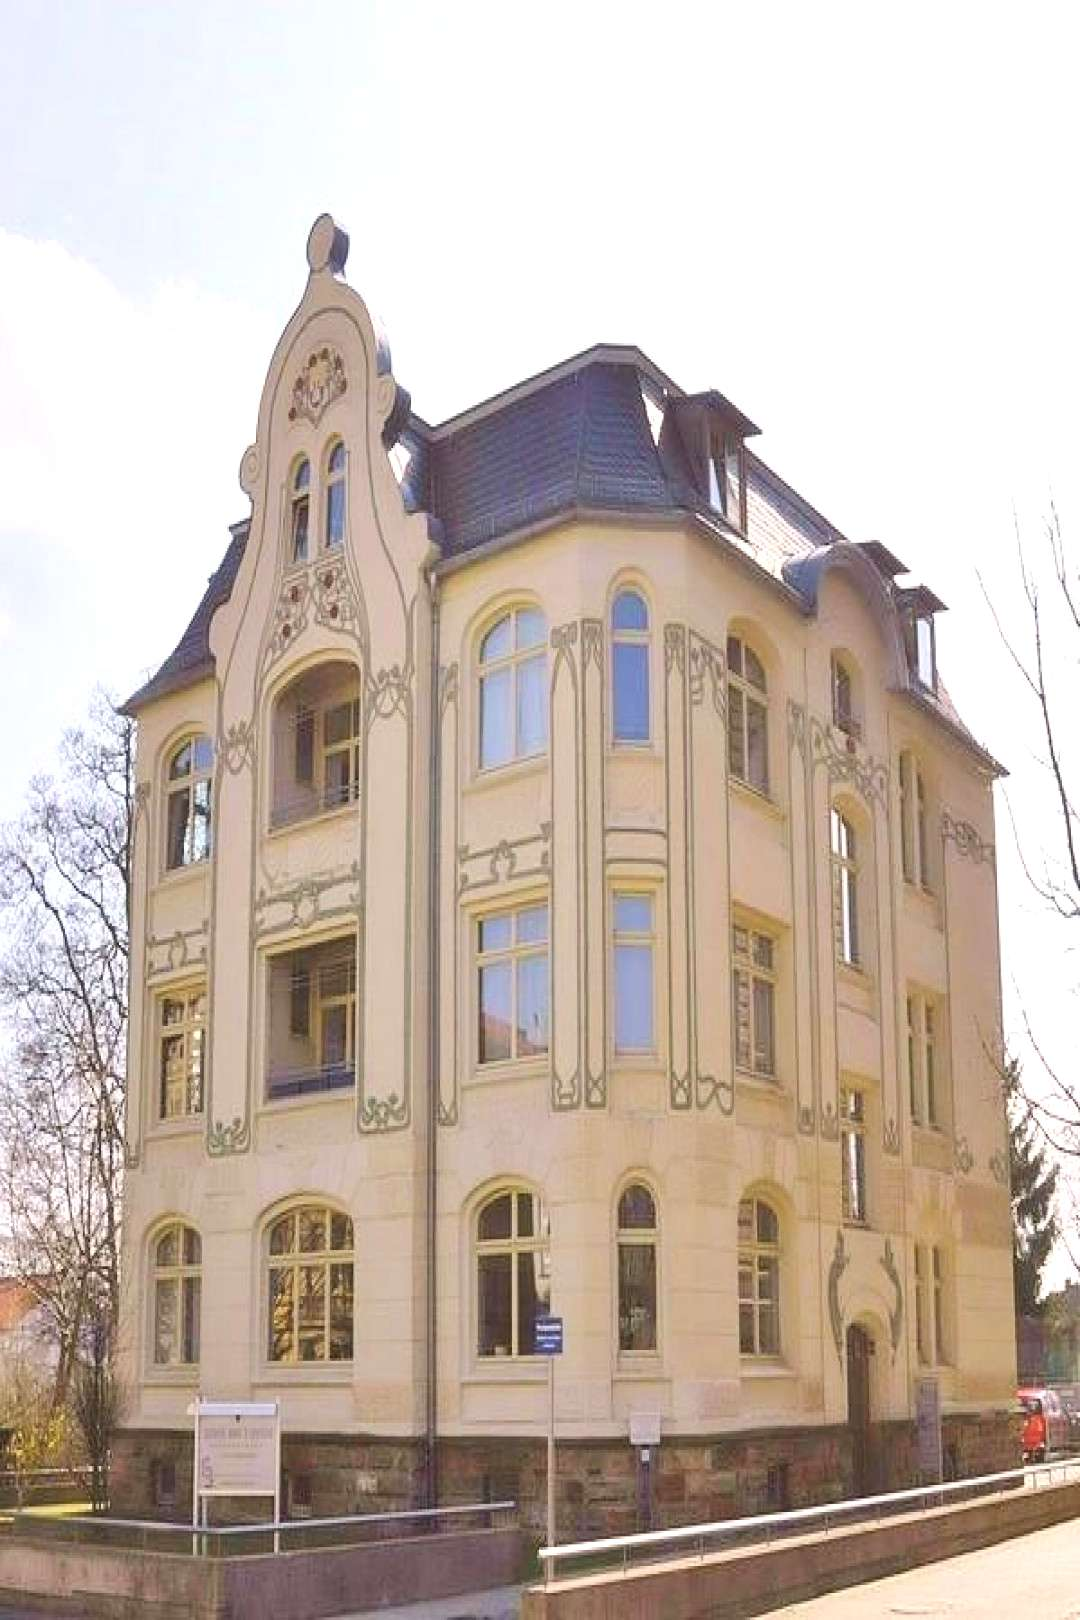 Art Nouveau House in Gotha,Thuringia, Germany 9 Hacks Art Nouveau House in Gotha,Thuringia, German